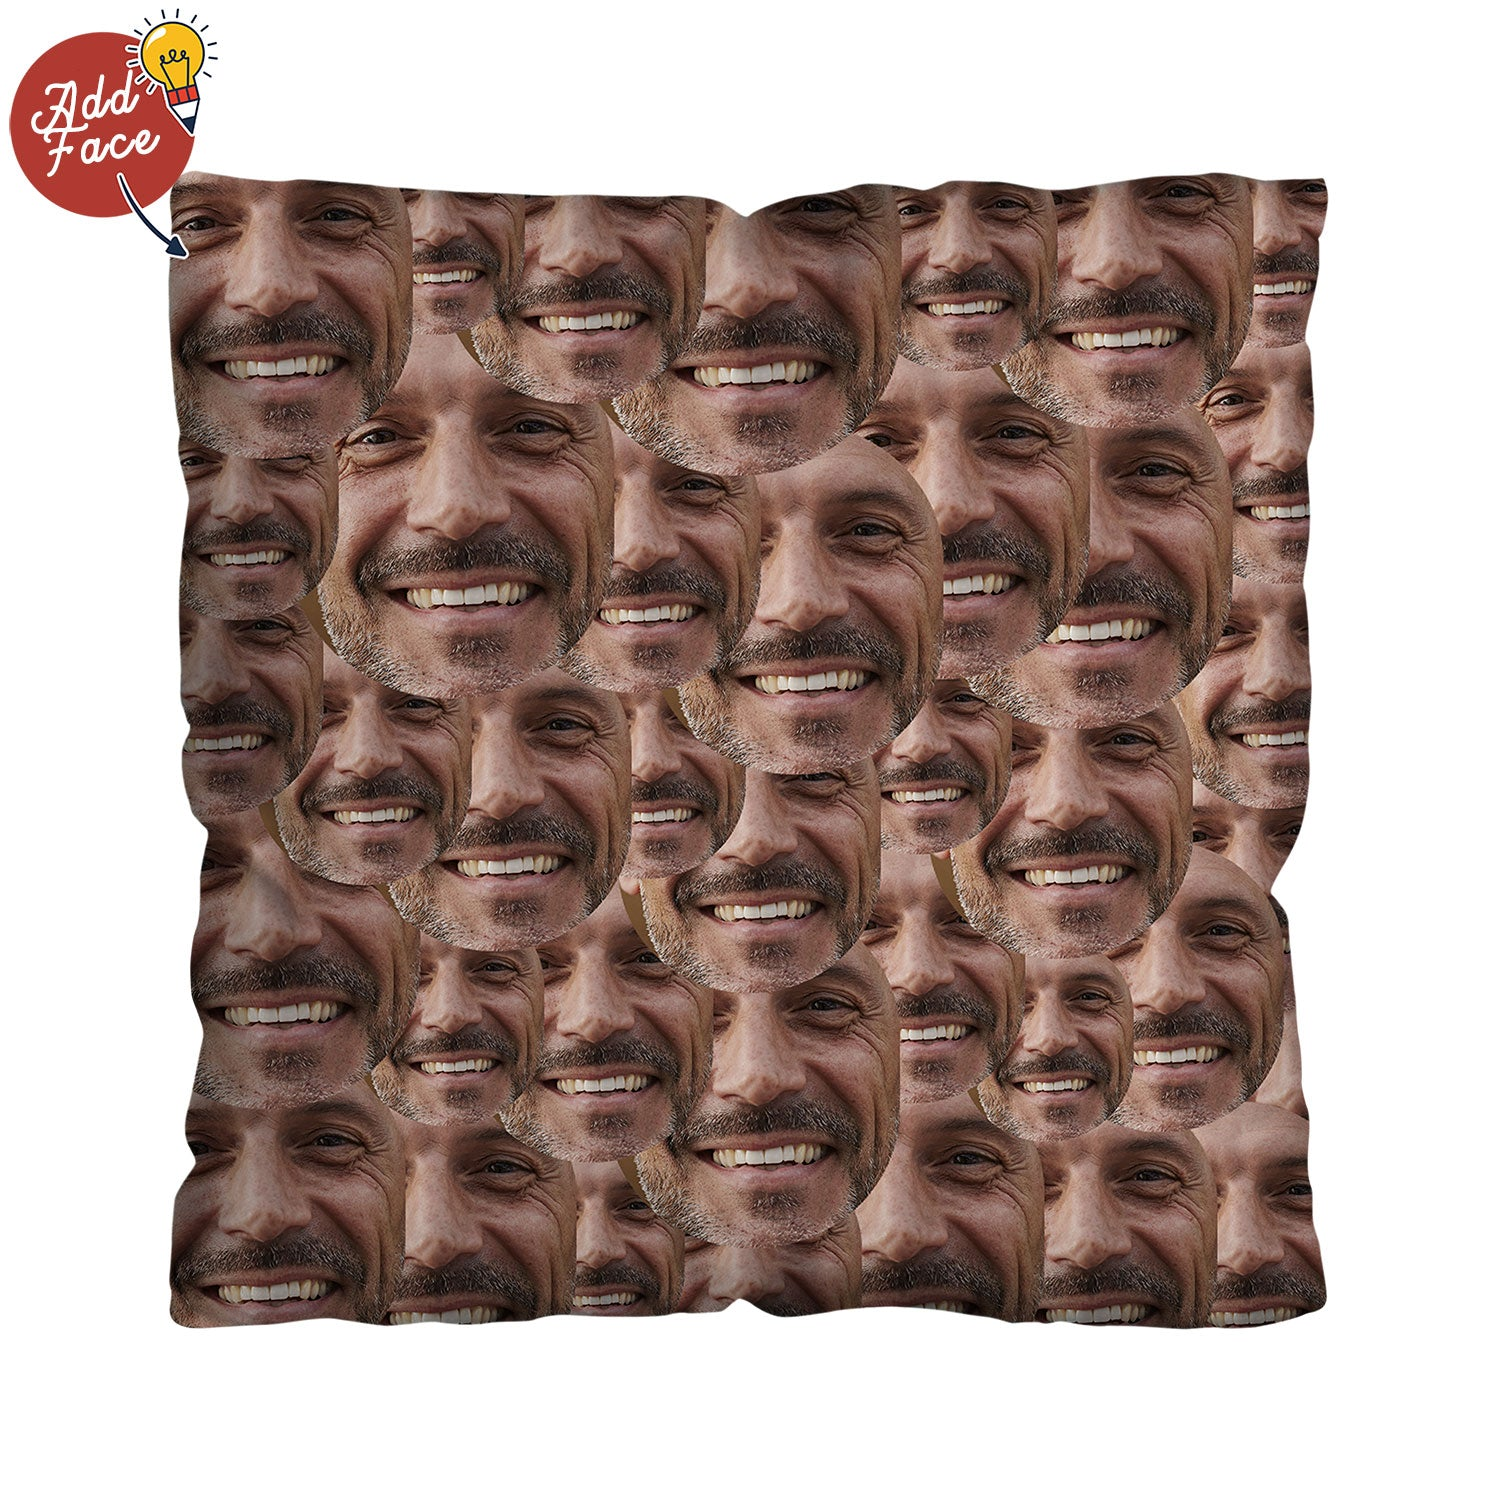 Your Face All Over - 45cm Cushion